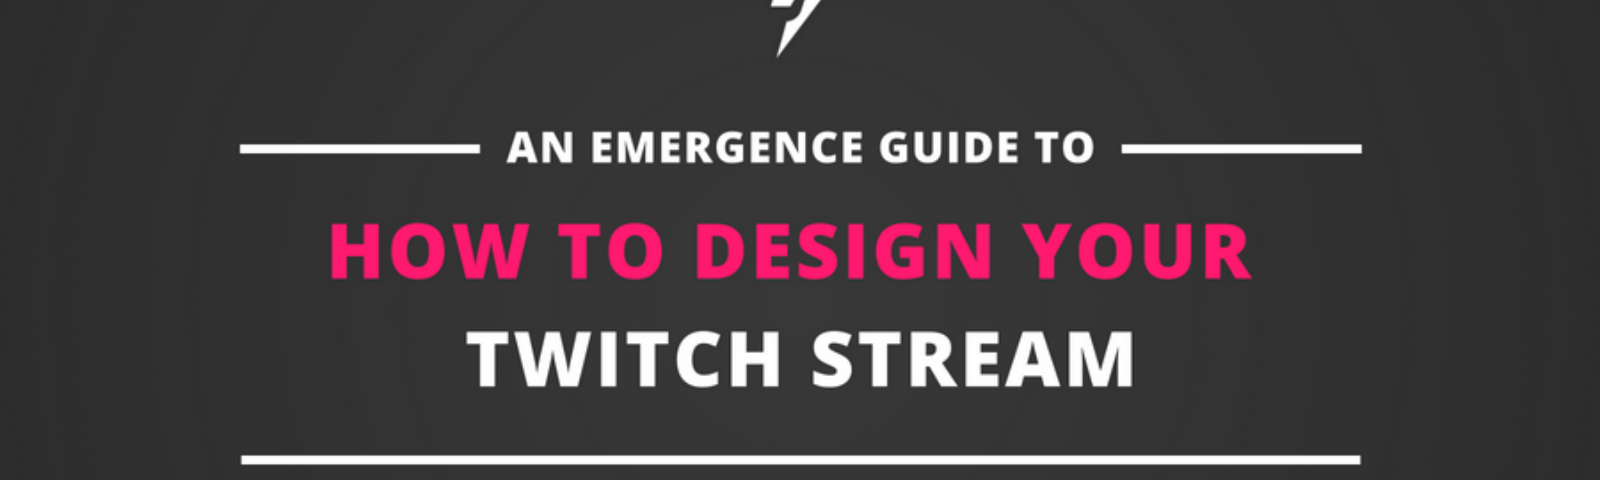 How To Design Your Twitch Stream Are You Brand New To Twitch Or Looking By Mark Longhurst The Emergence Medium